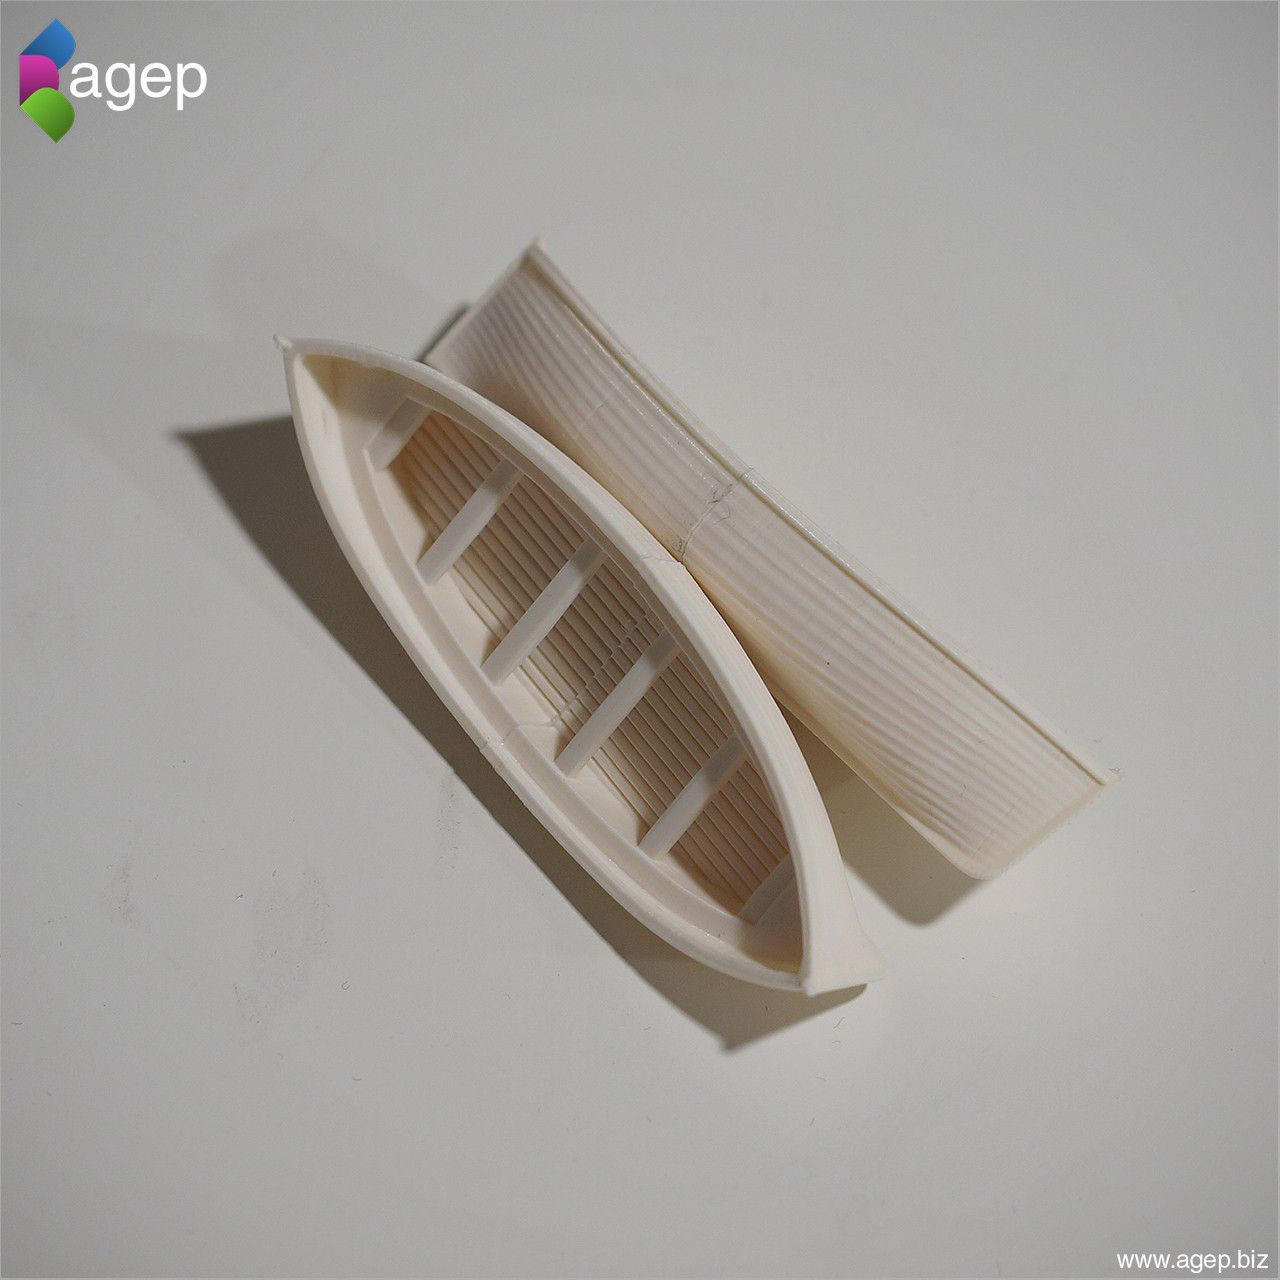 titanic_lifeboat_agepbiz_004.jpg Download free STL file Lifeboats of the RMS Titanic • Design to 3D print, agepbiz